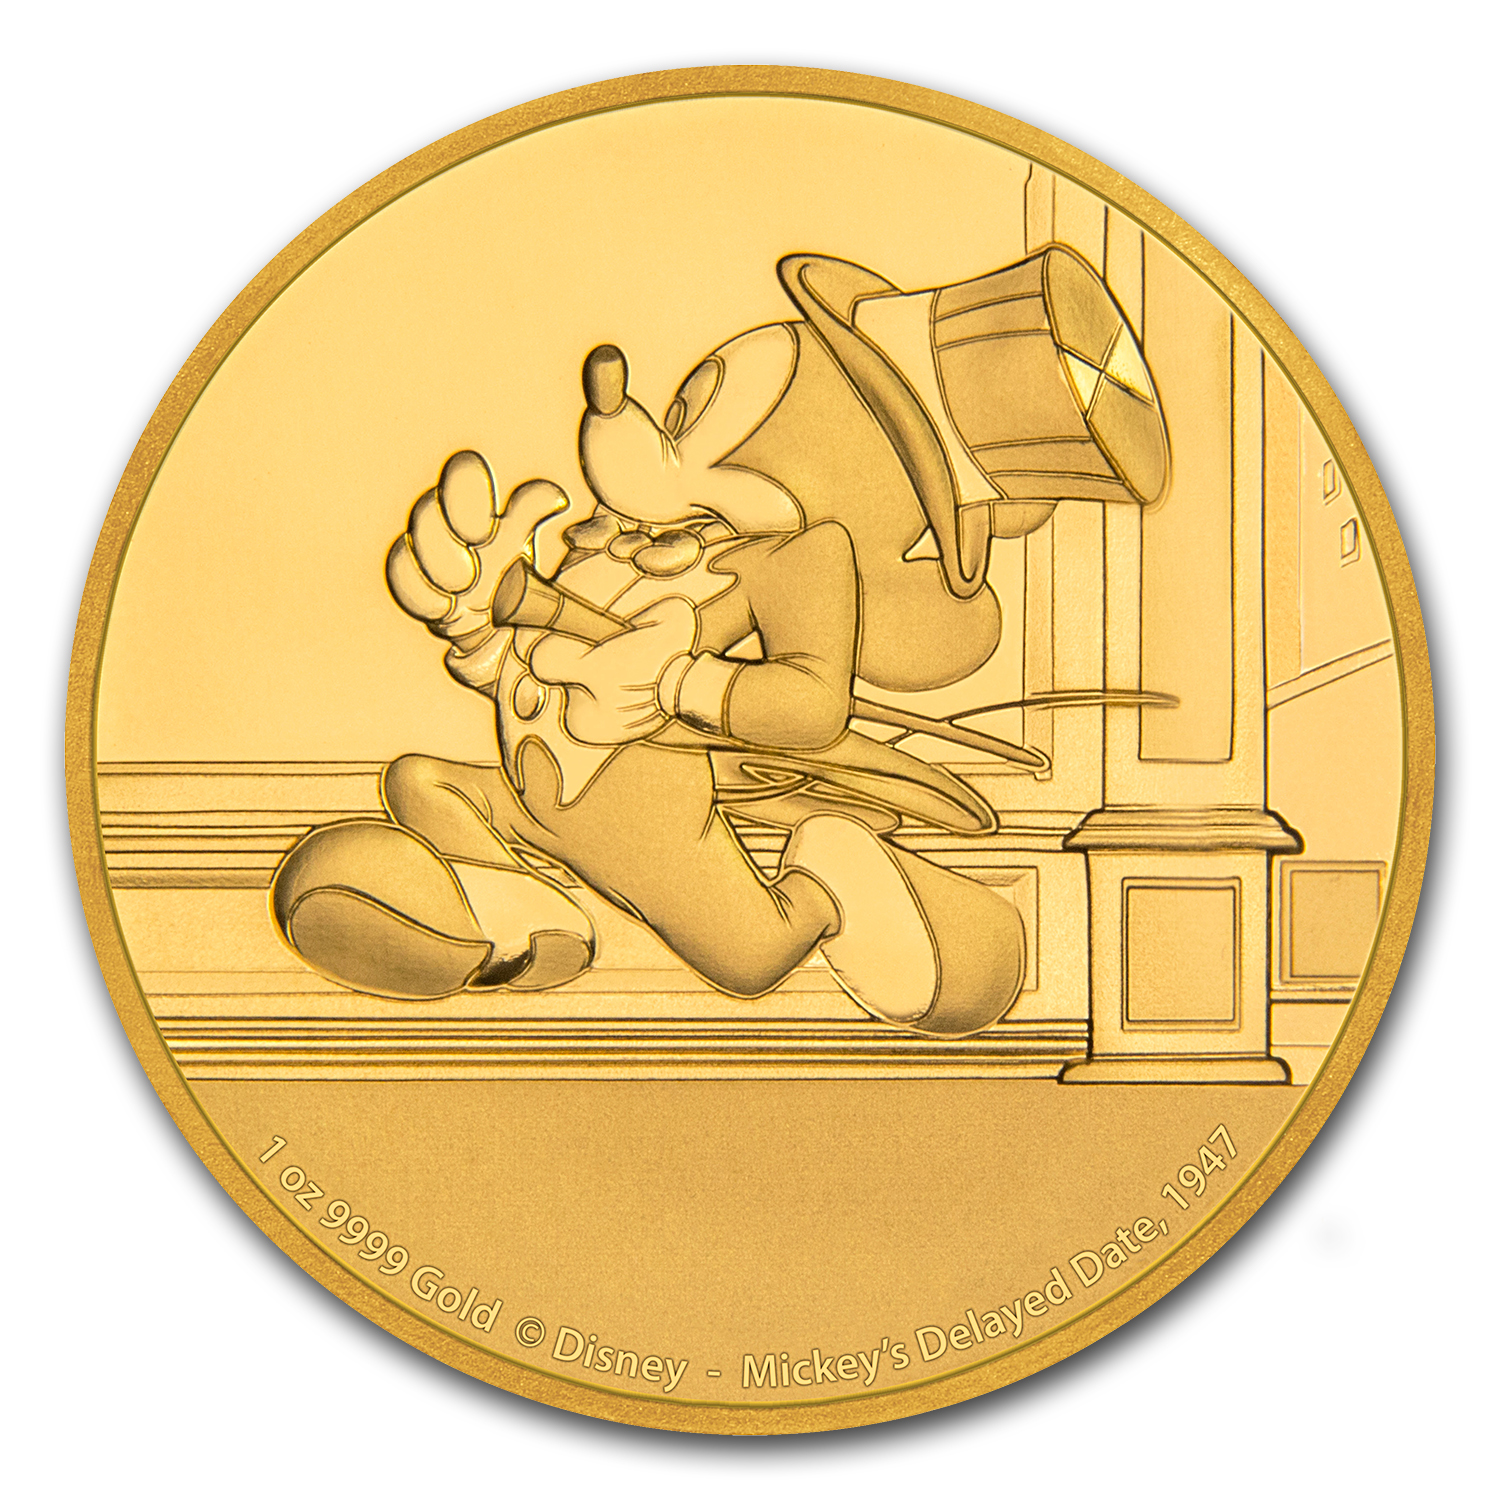 2017 1 oz Gold $250 Mickey Through the Ages Mickey's Delayed Date